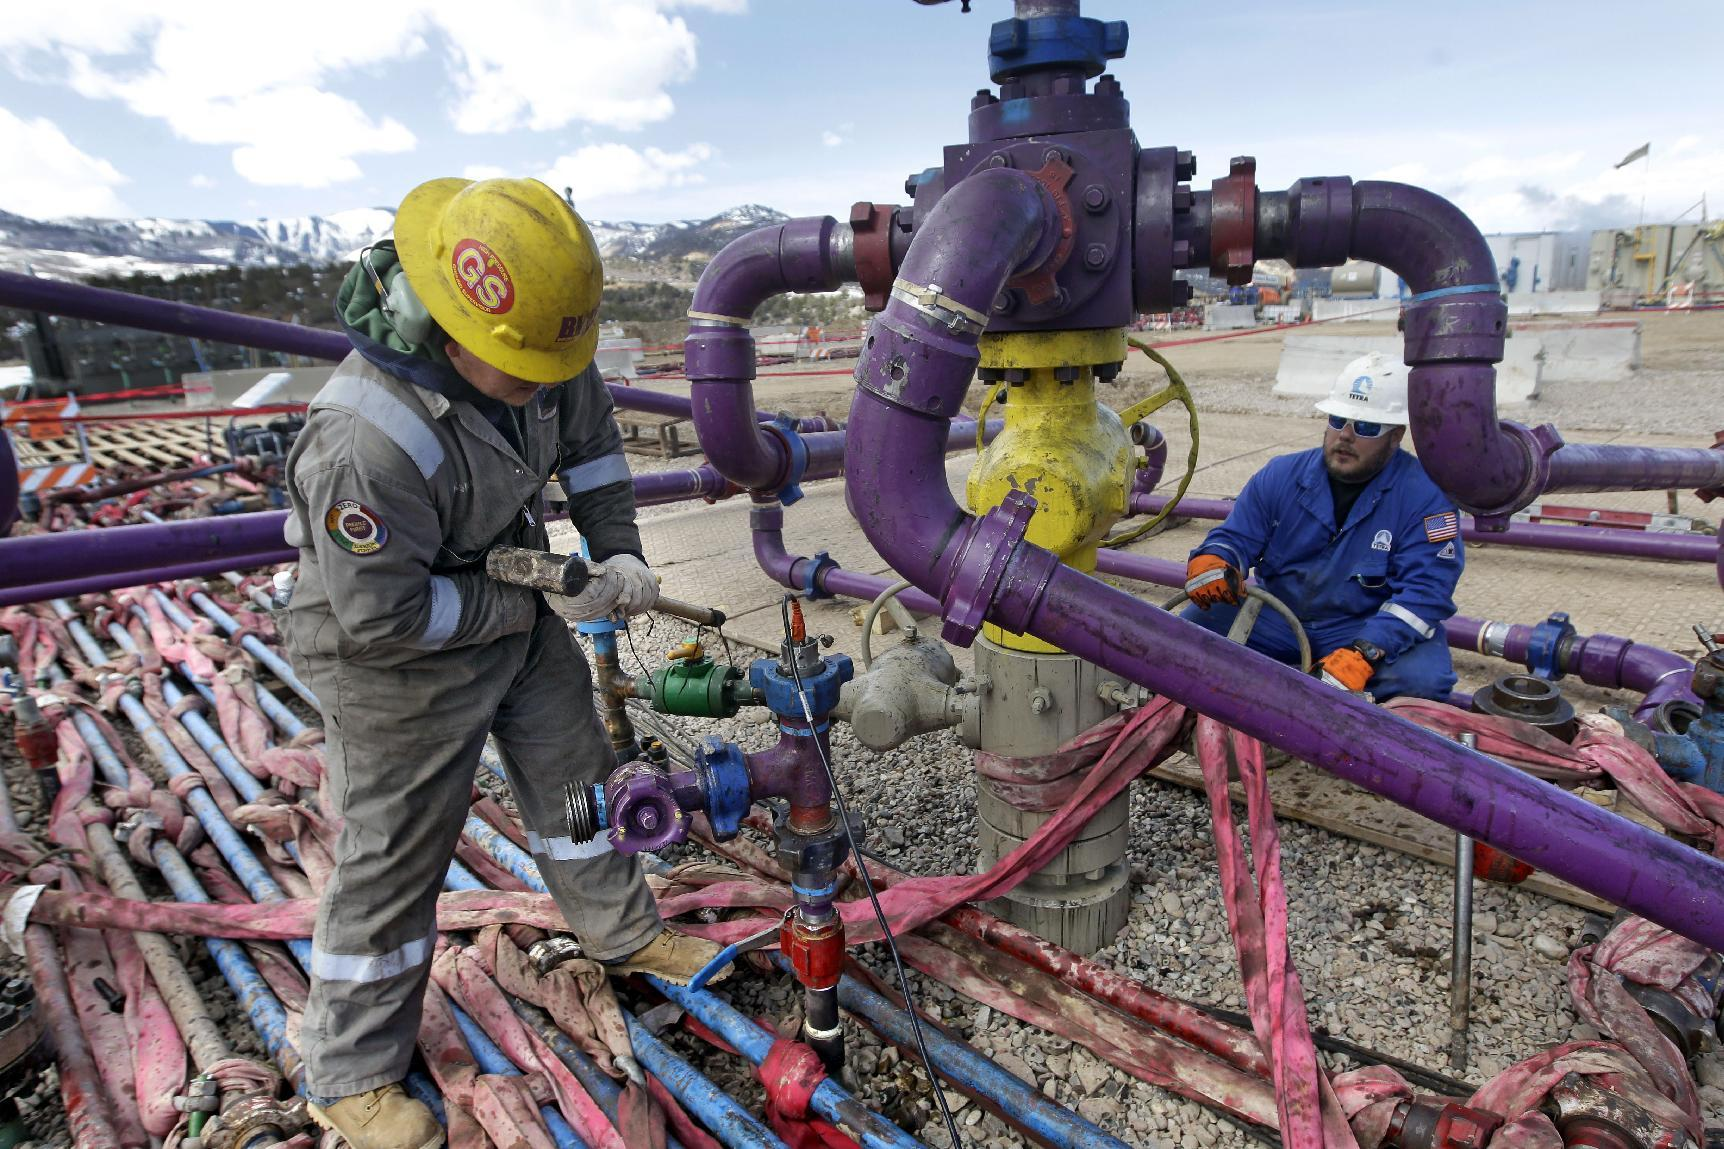 """FILE - In this March 29, 2013 file photo, workers tend to a well head during a hydraulic fracturing operation at an Encana Oil & Gas (USA) Inc. gas well outside Rifle, in western Colorado. The Obama administration is proposing a rule that would require companies that drill for oil and natural gas on federal lands to publicly disclose chemicals used in hydraulic fracturing operations. The new """"fracking"""" rule replaces a draft proposed last year that was withdrawn amid industry complaints that federal regulation could hinder an ongoing boom in natural gas production. (AP Photo/Brennan Linsley, File)"""